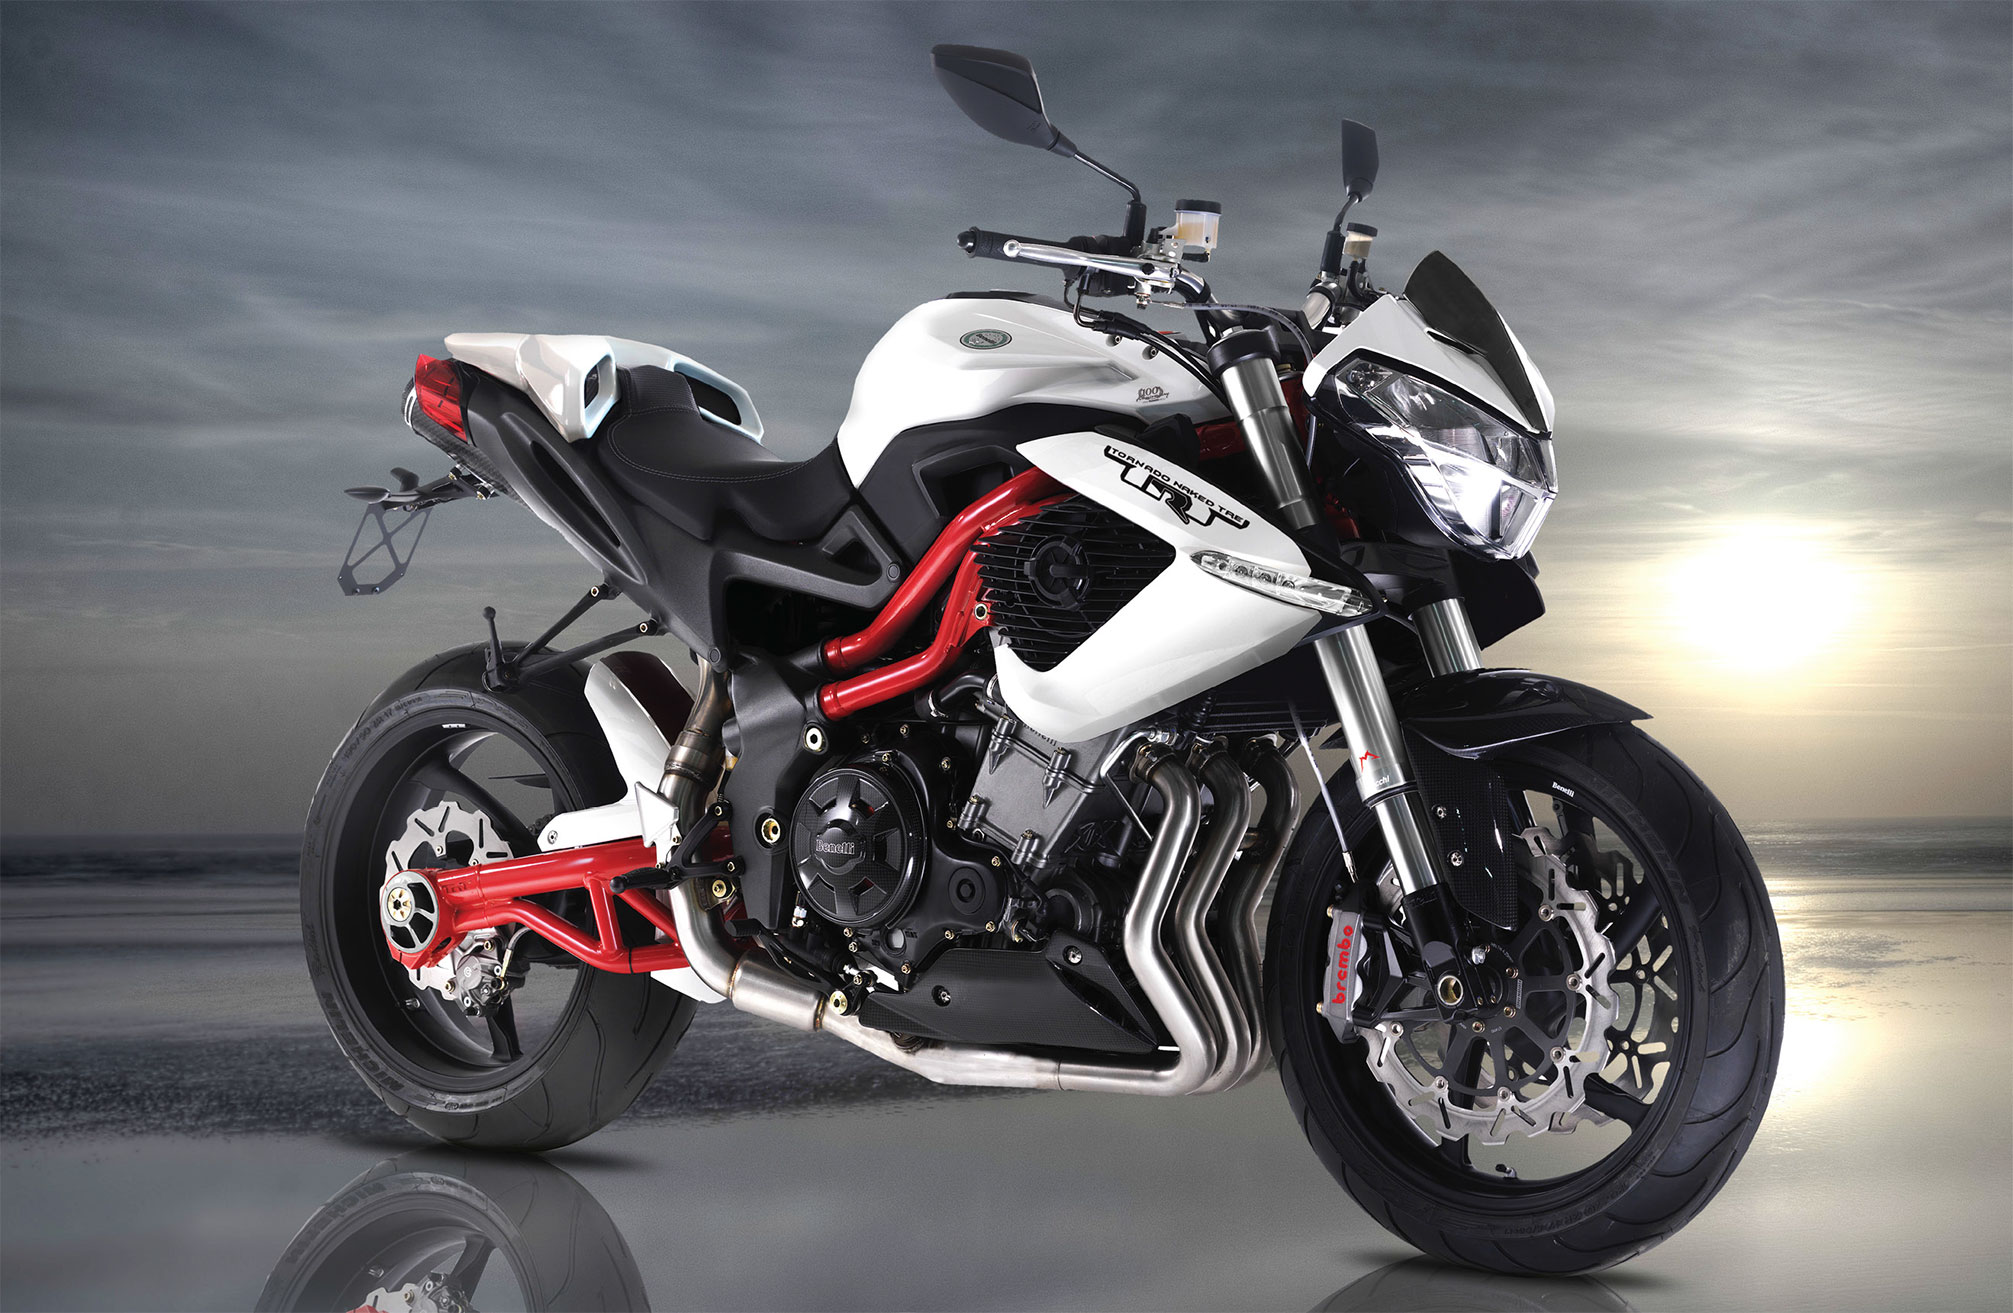 2013 Benelli R160 Review